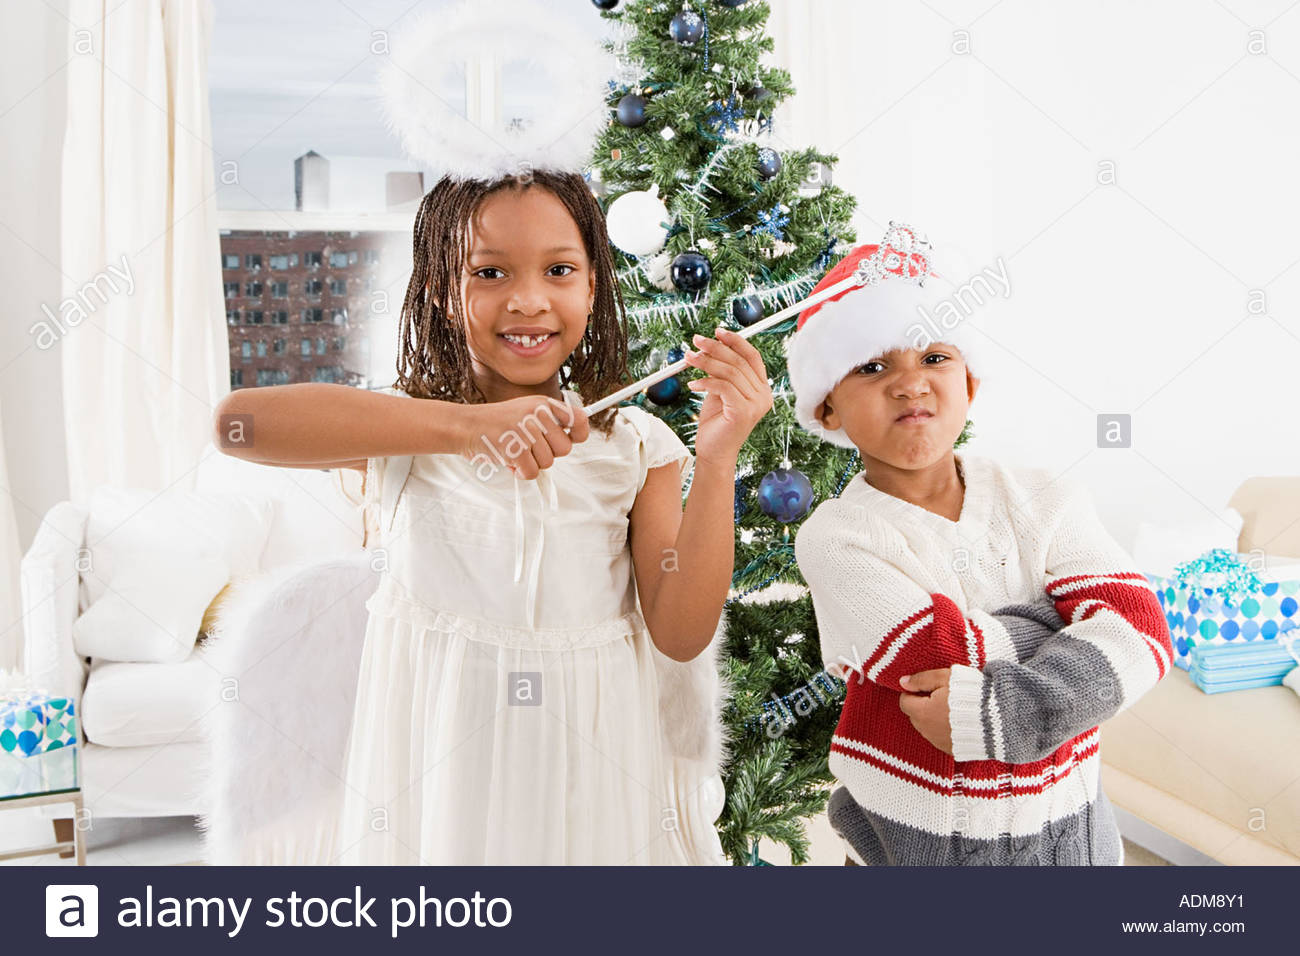 Mischievous brother and sister in costumes - Stock Image